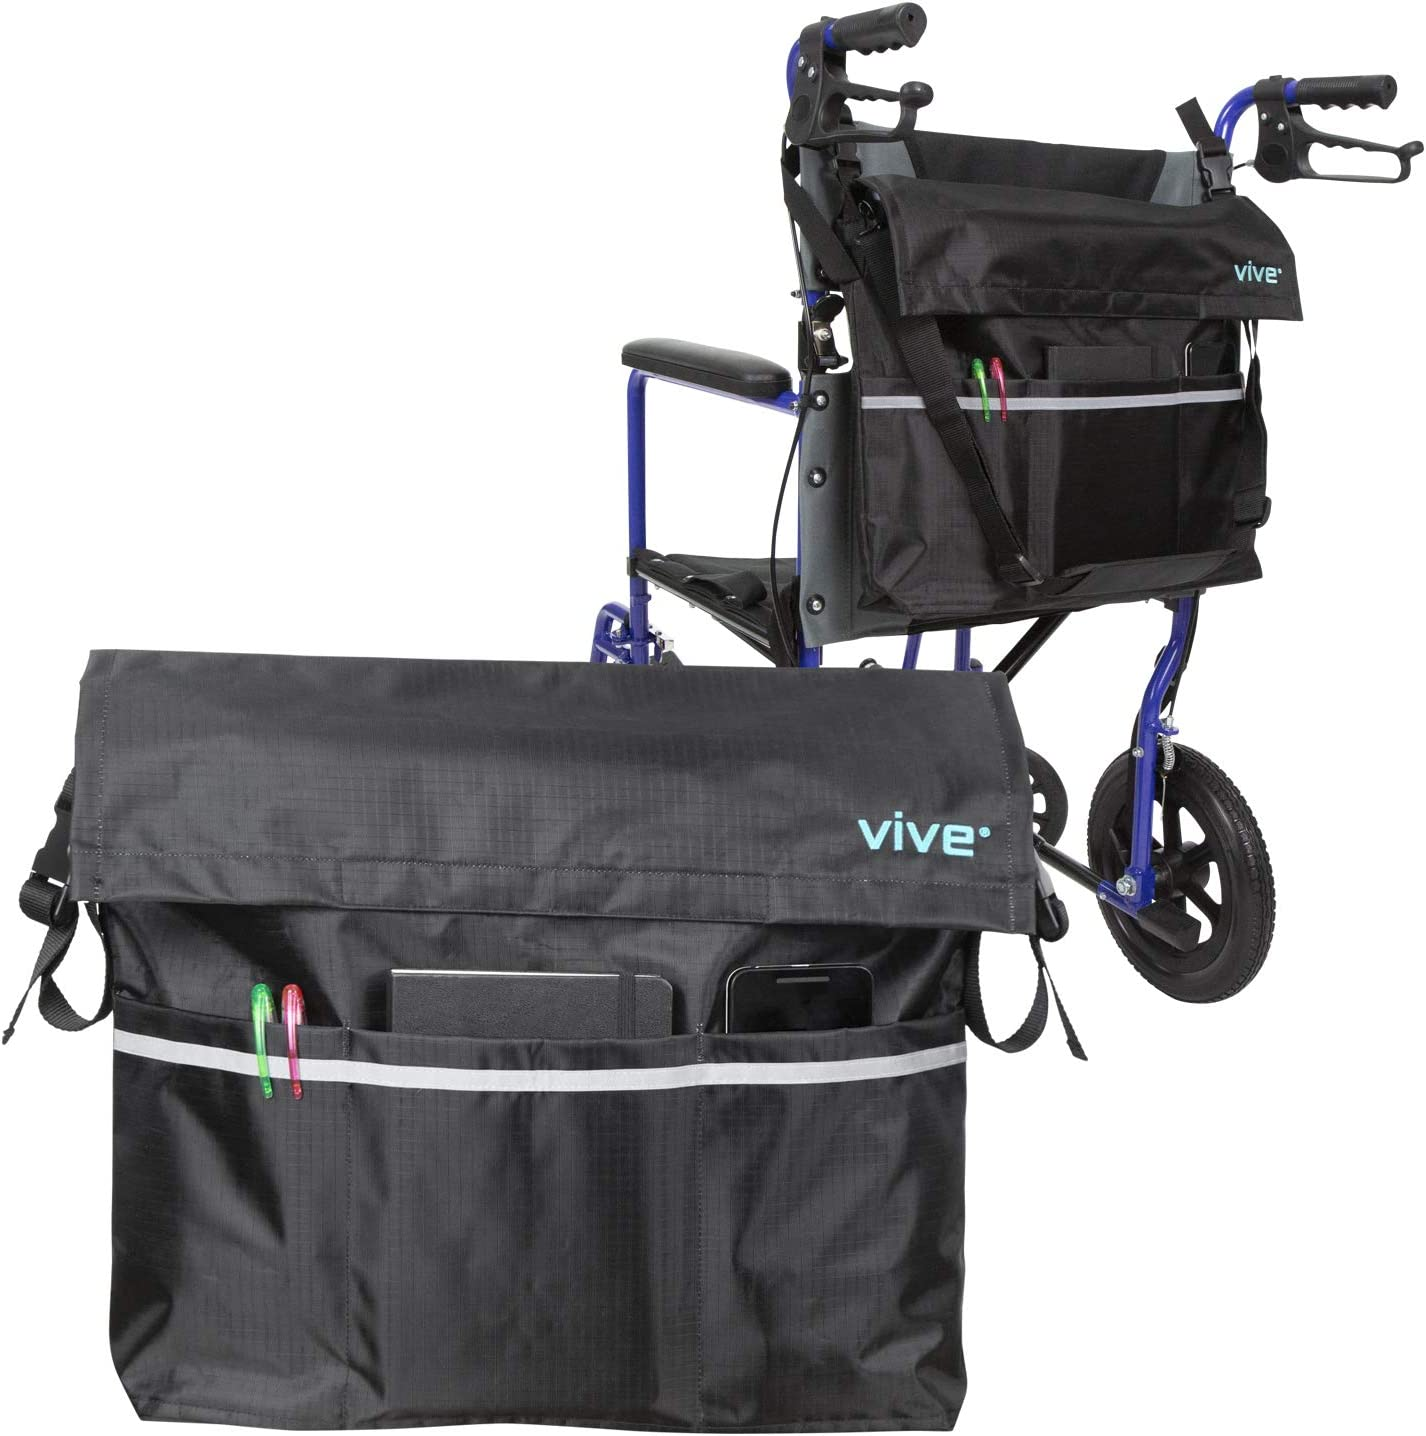 Vive Wheelchair Bag - Wheel Chair Storage Tote Accessory for Carrying Loose Items and Accessories - Travel Messenger Backpack for Men, Women, Handicap, Elderly - Accessible Pouch and Pockets, Black: Health & Personal Care